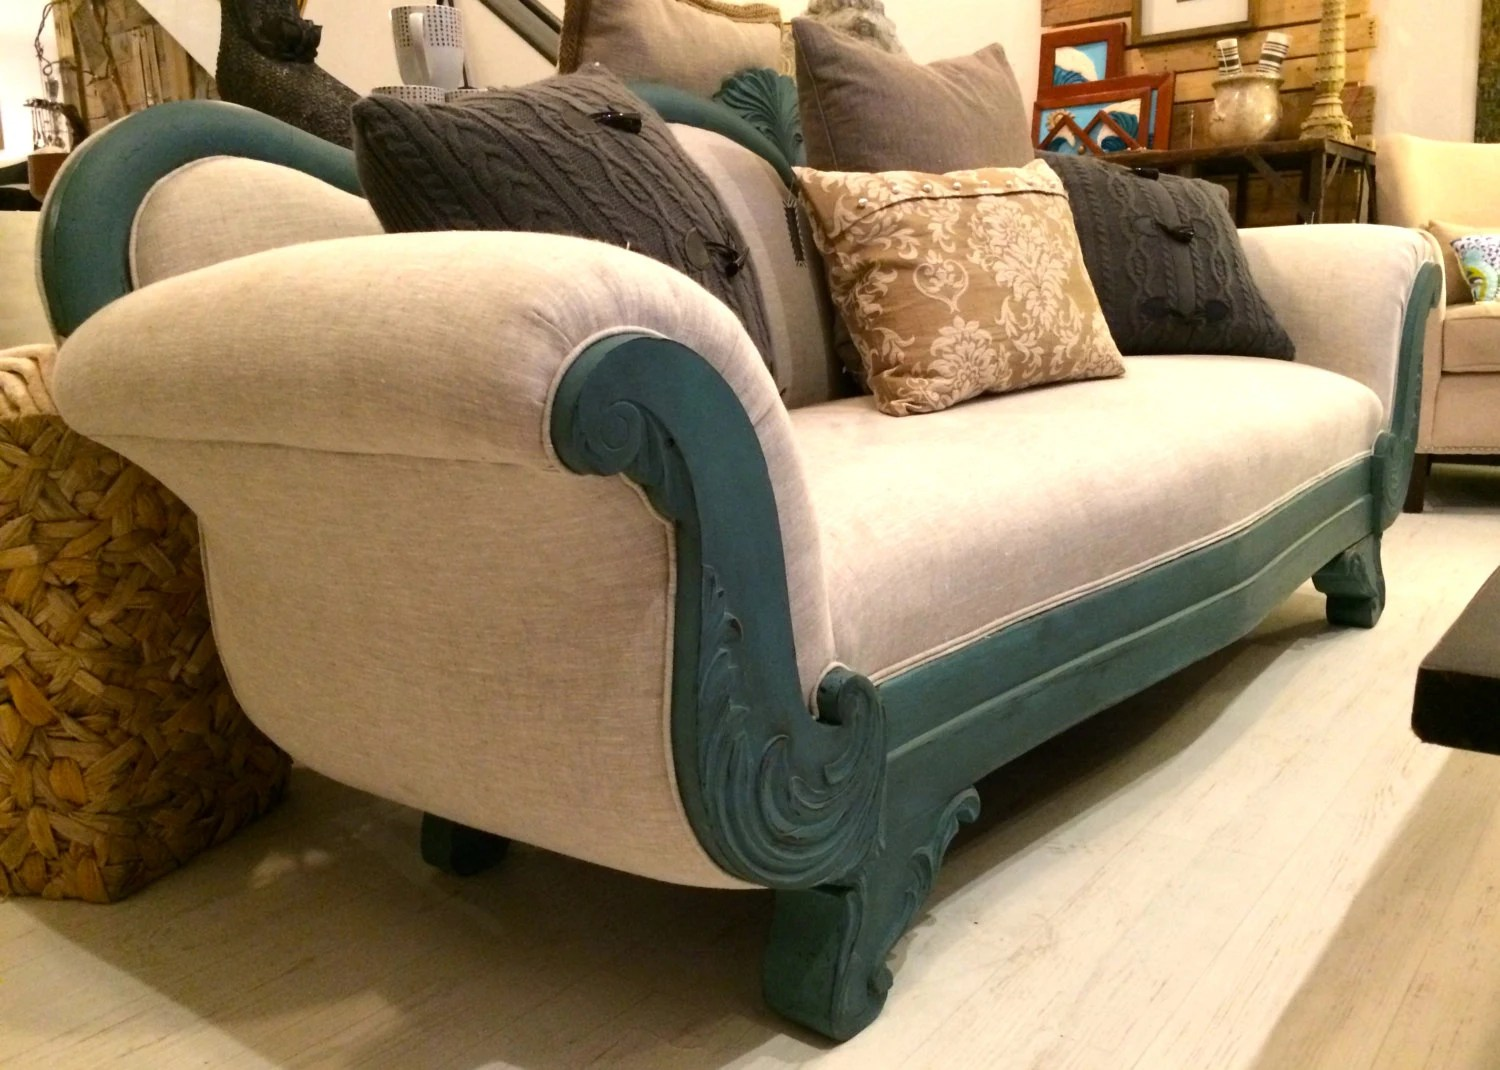 a sofa in the forties cama estilo ingles upcycled 1940 39s vintage victorian by reclaimhumanity